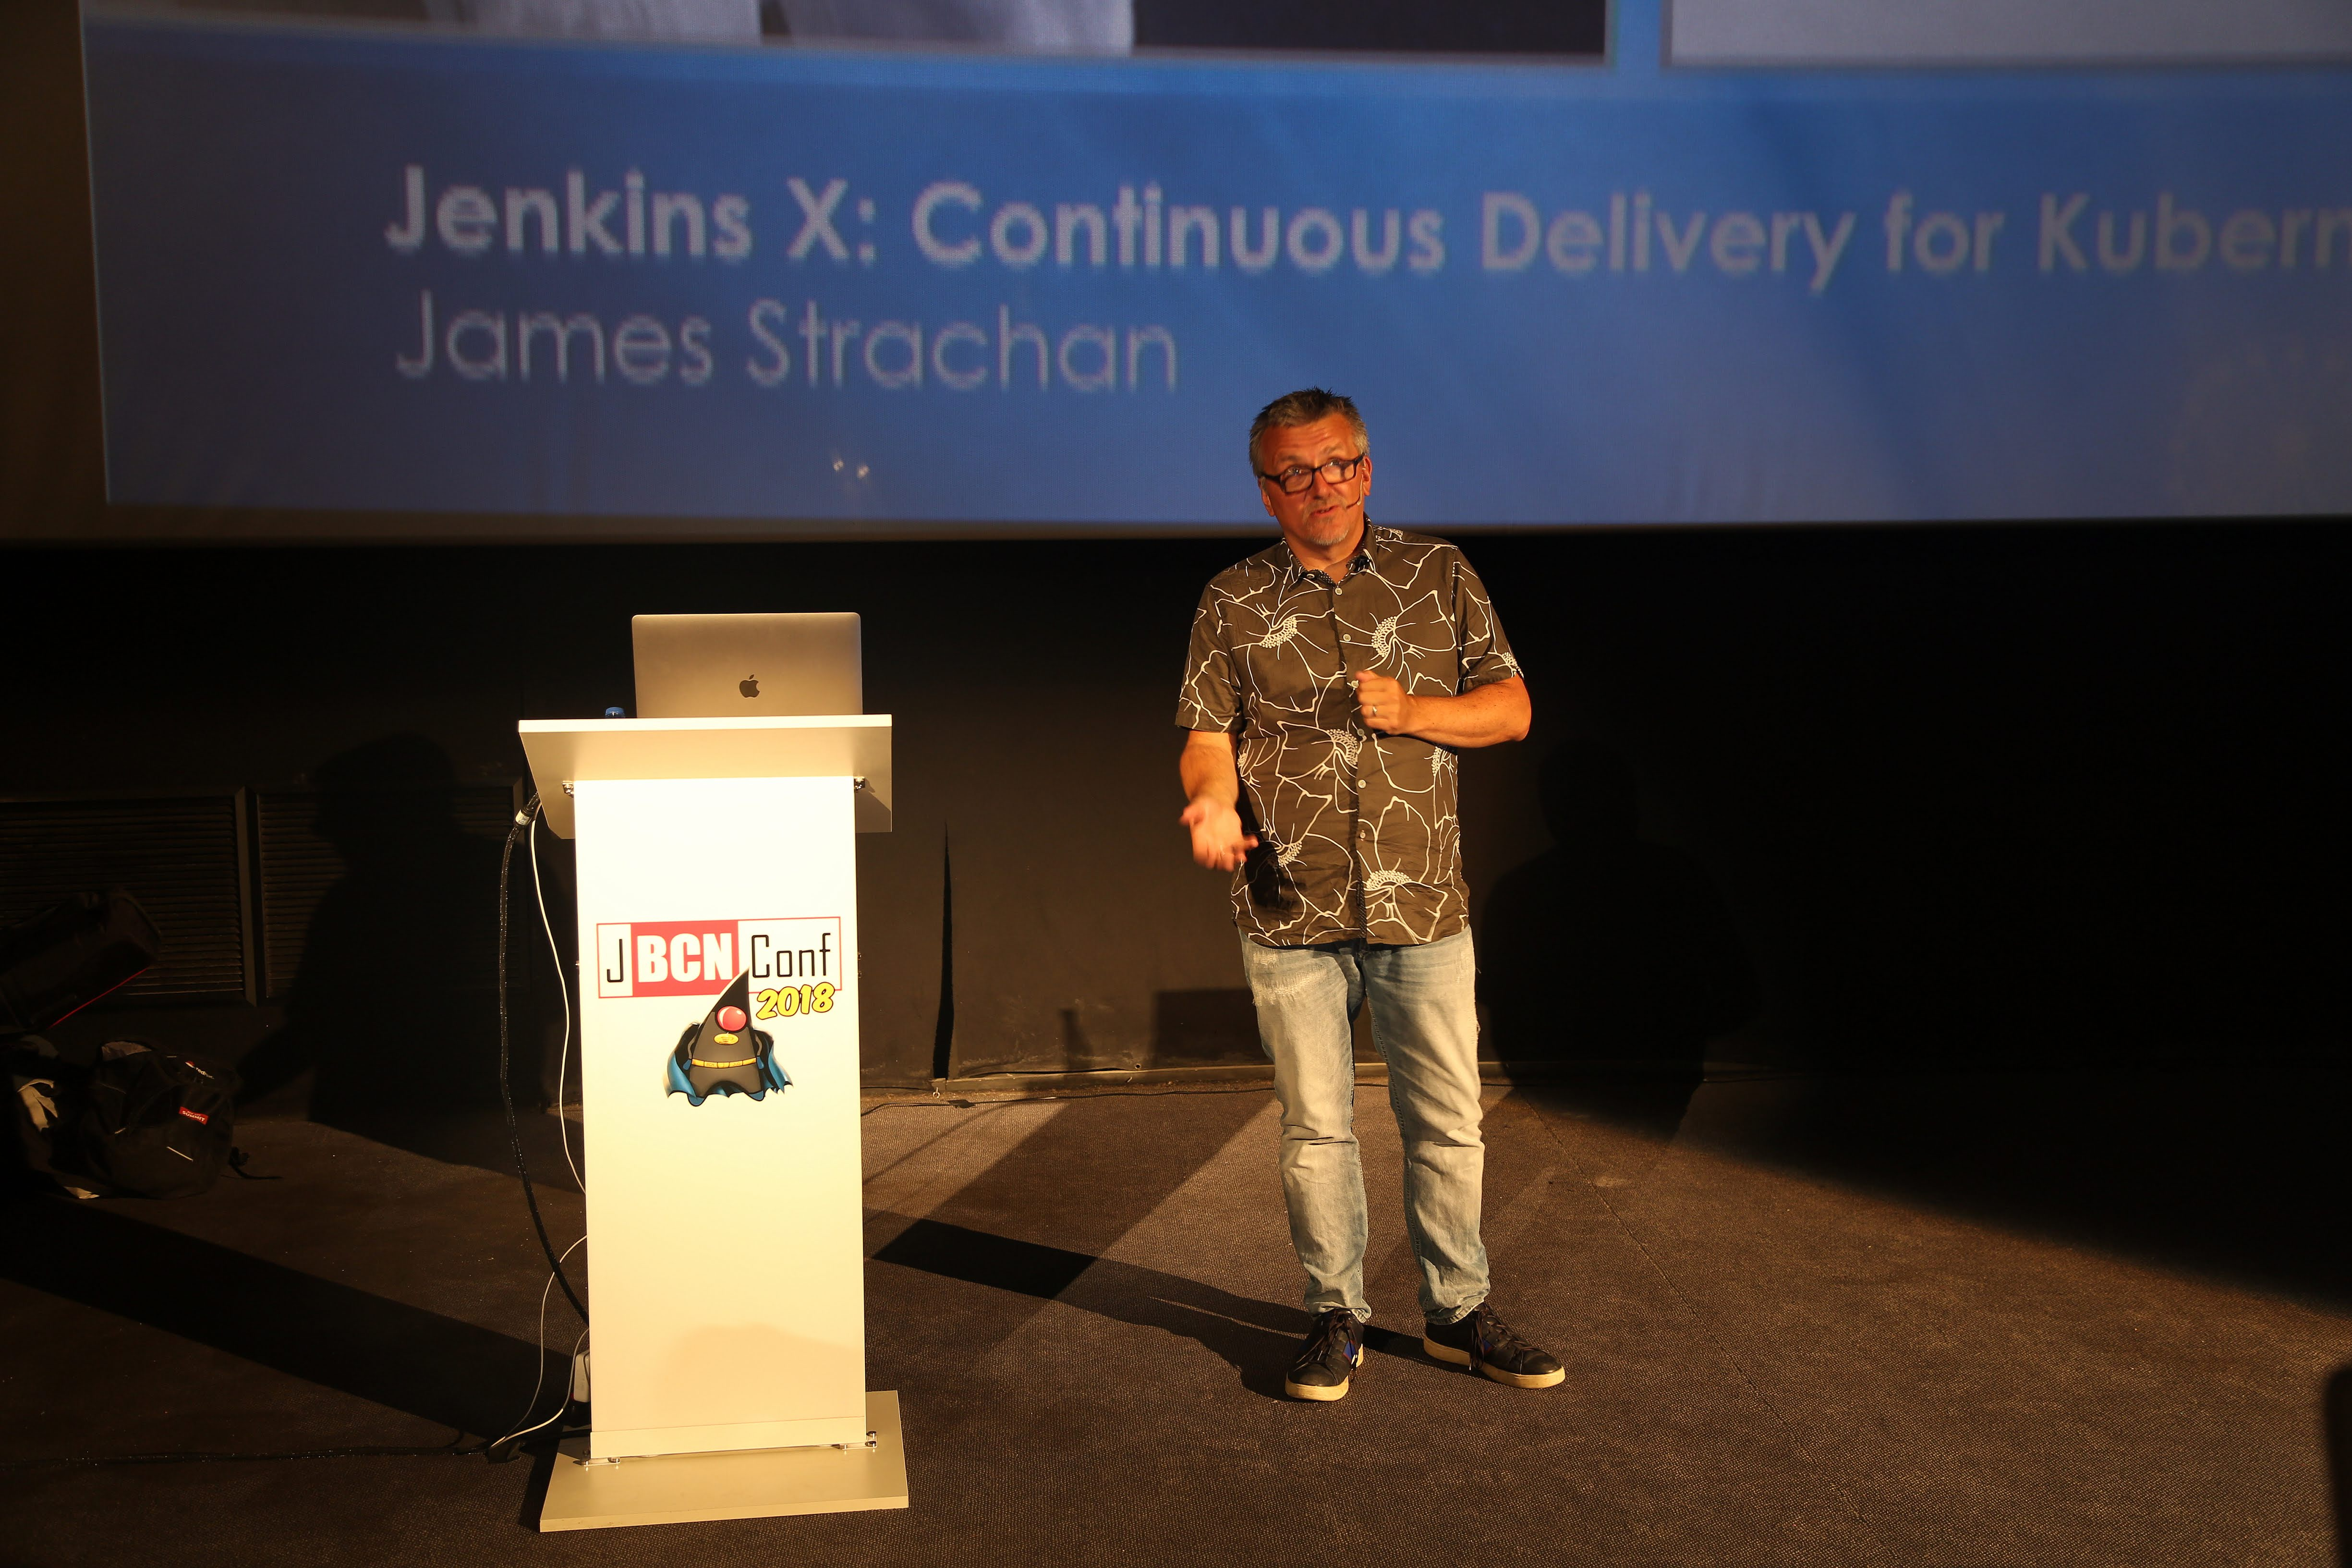 JBCNConf - The first Java and JVM conference in Spain